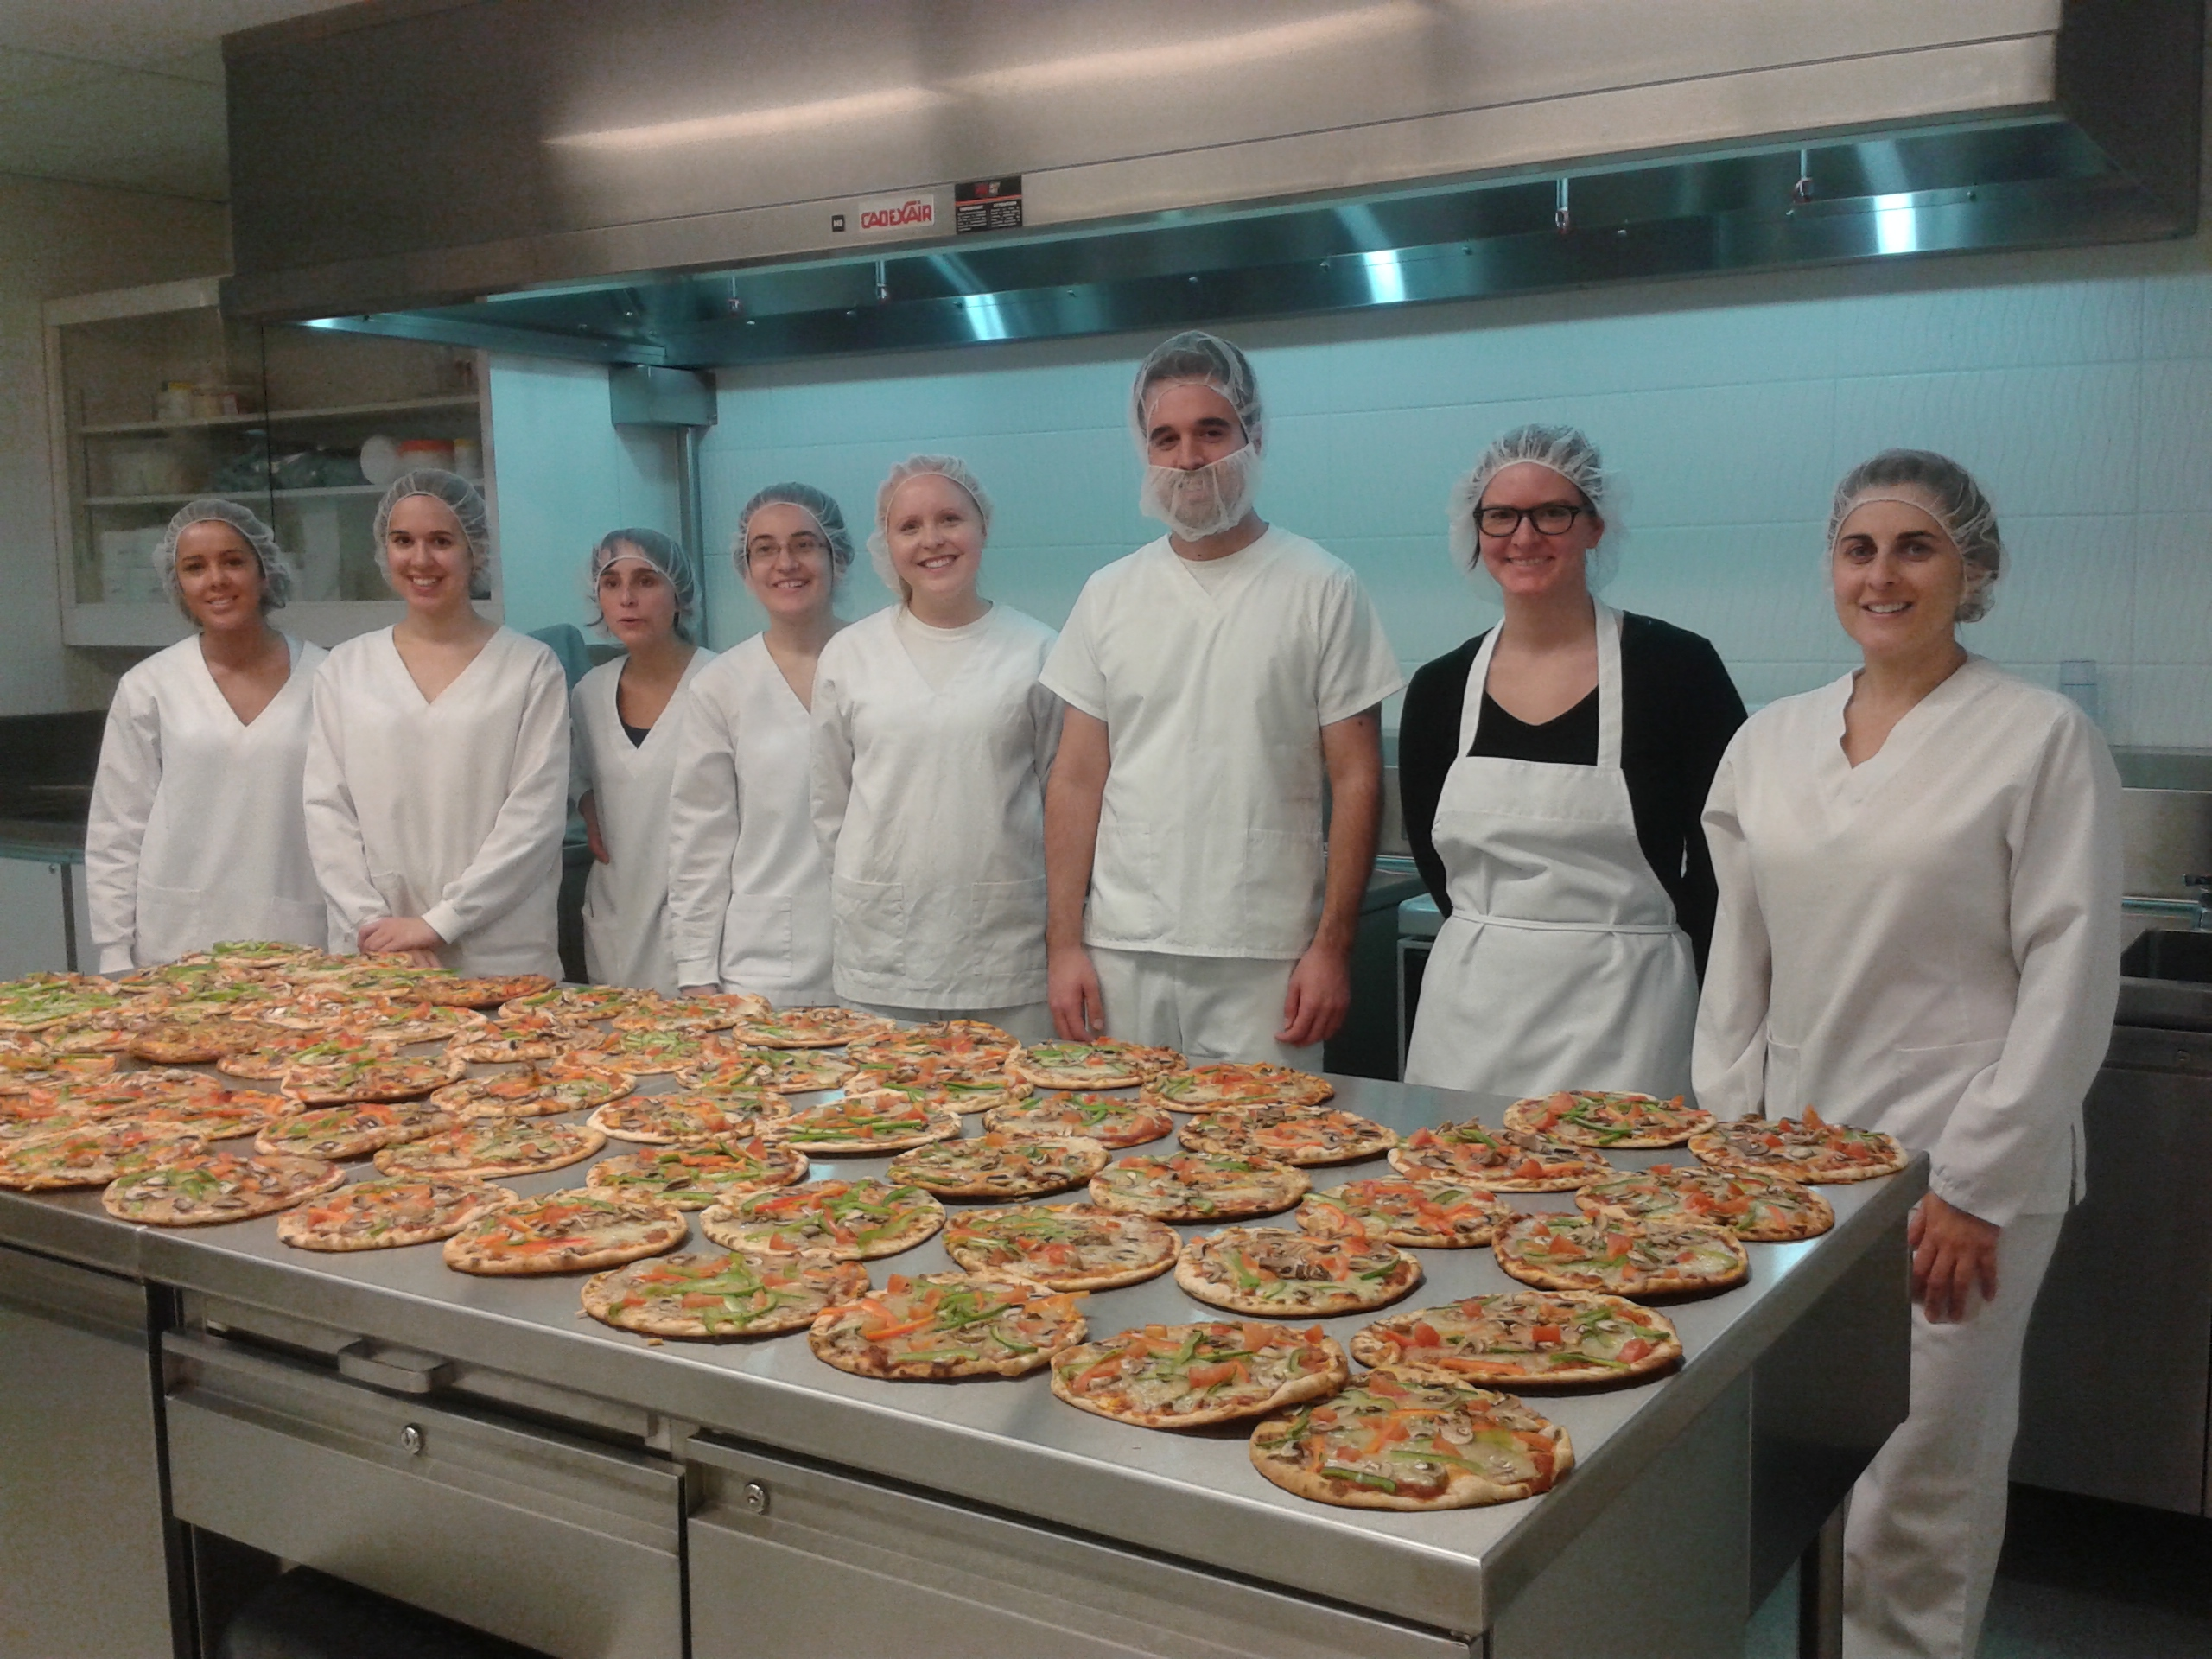 Cuisines collectives coll ge montmorency for College montmorency piscine